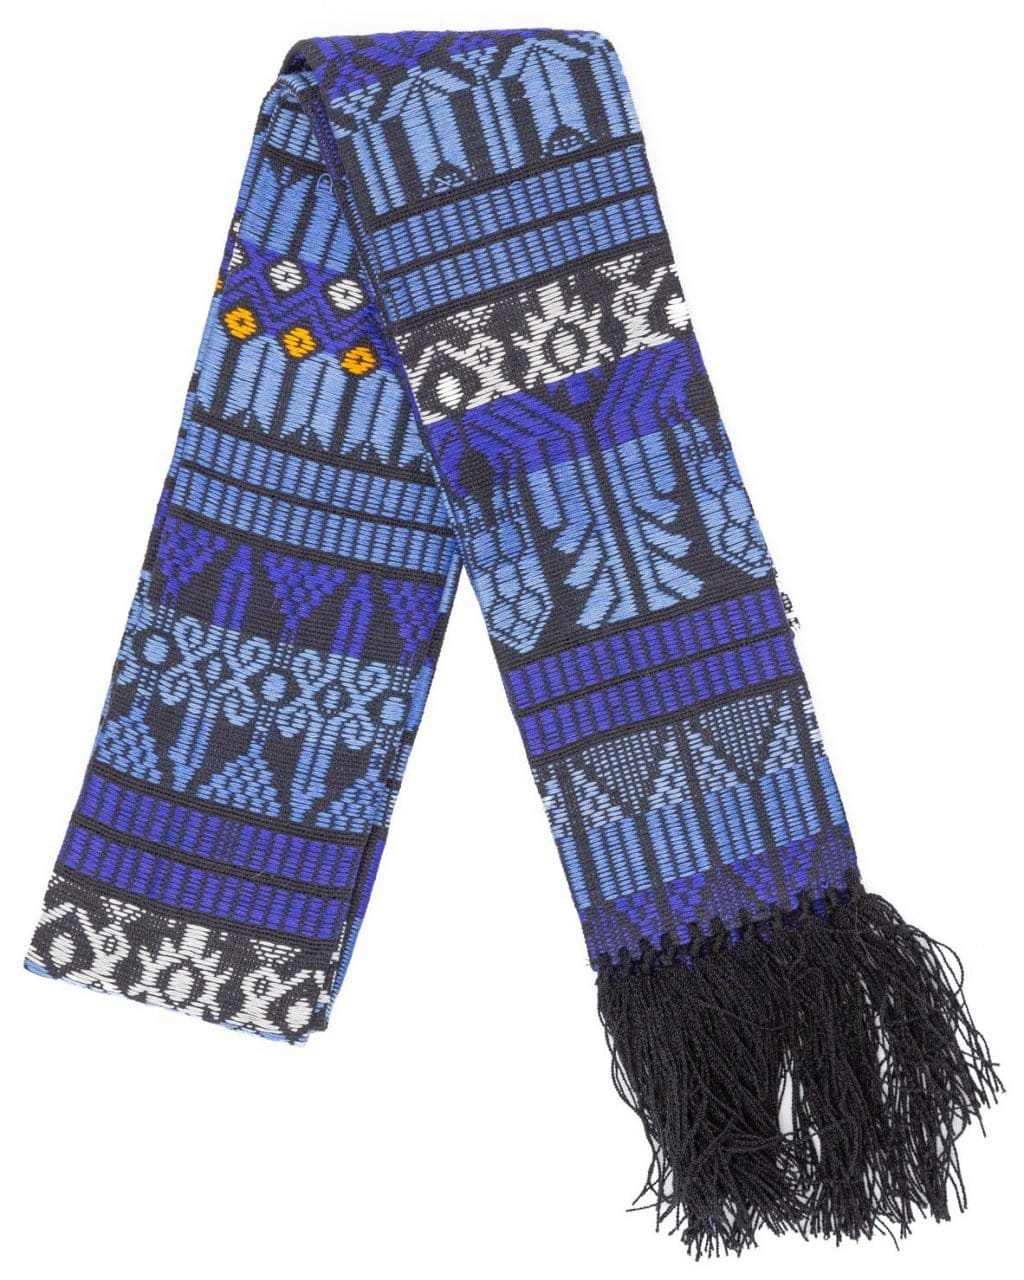 Brocaded Clerical Stole - Blue